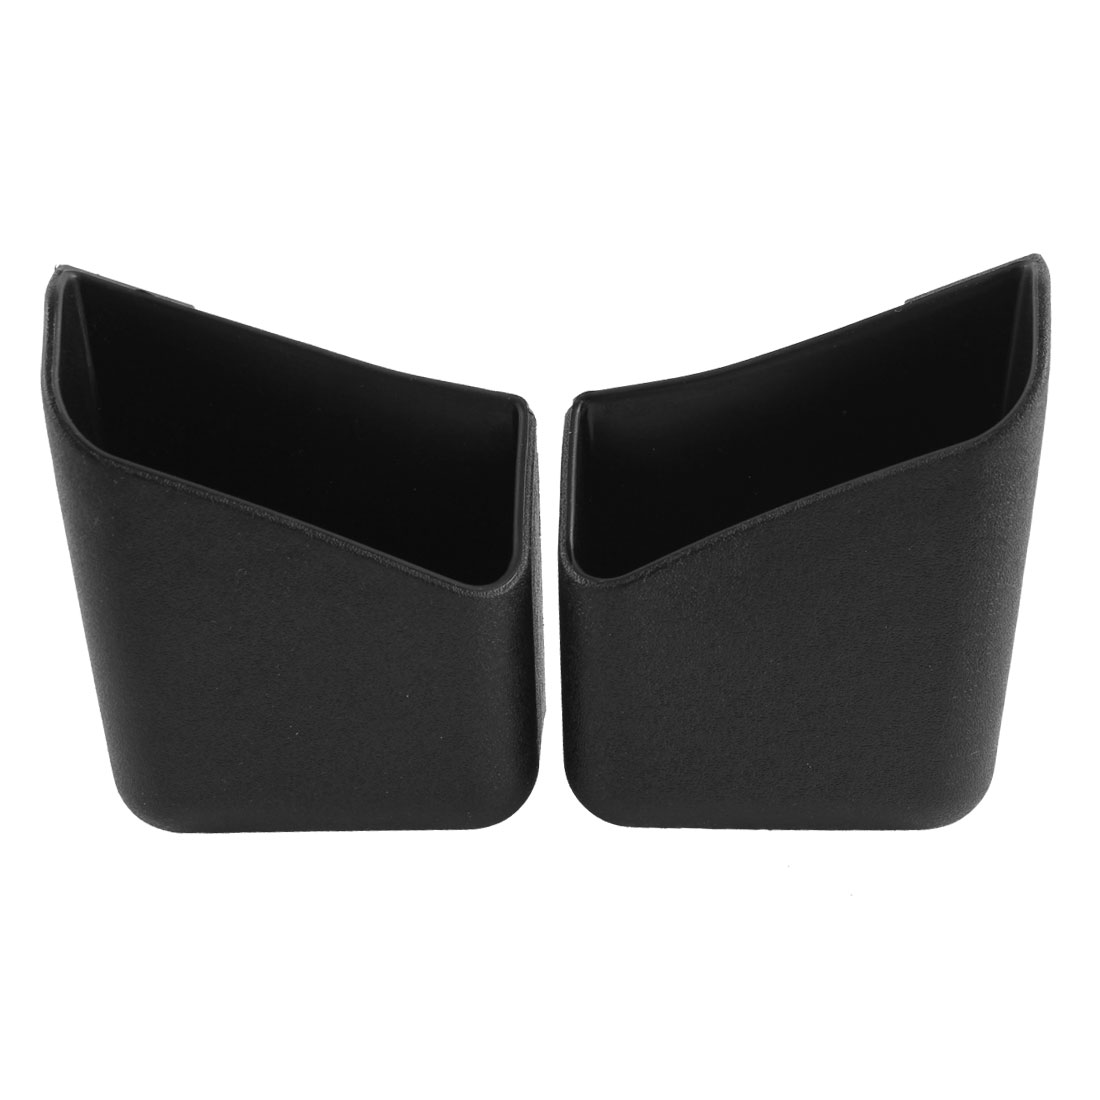 2 Pcs Black Plastic Adhesive Tape Vehicles Car Card Smart Phone Holder